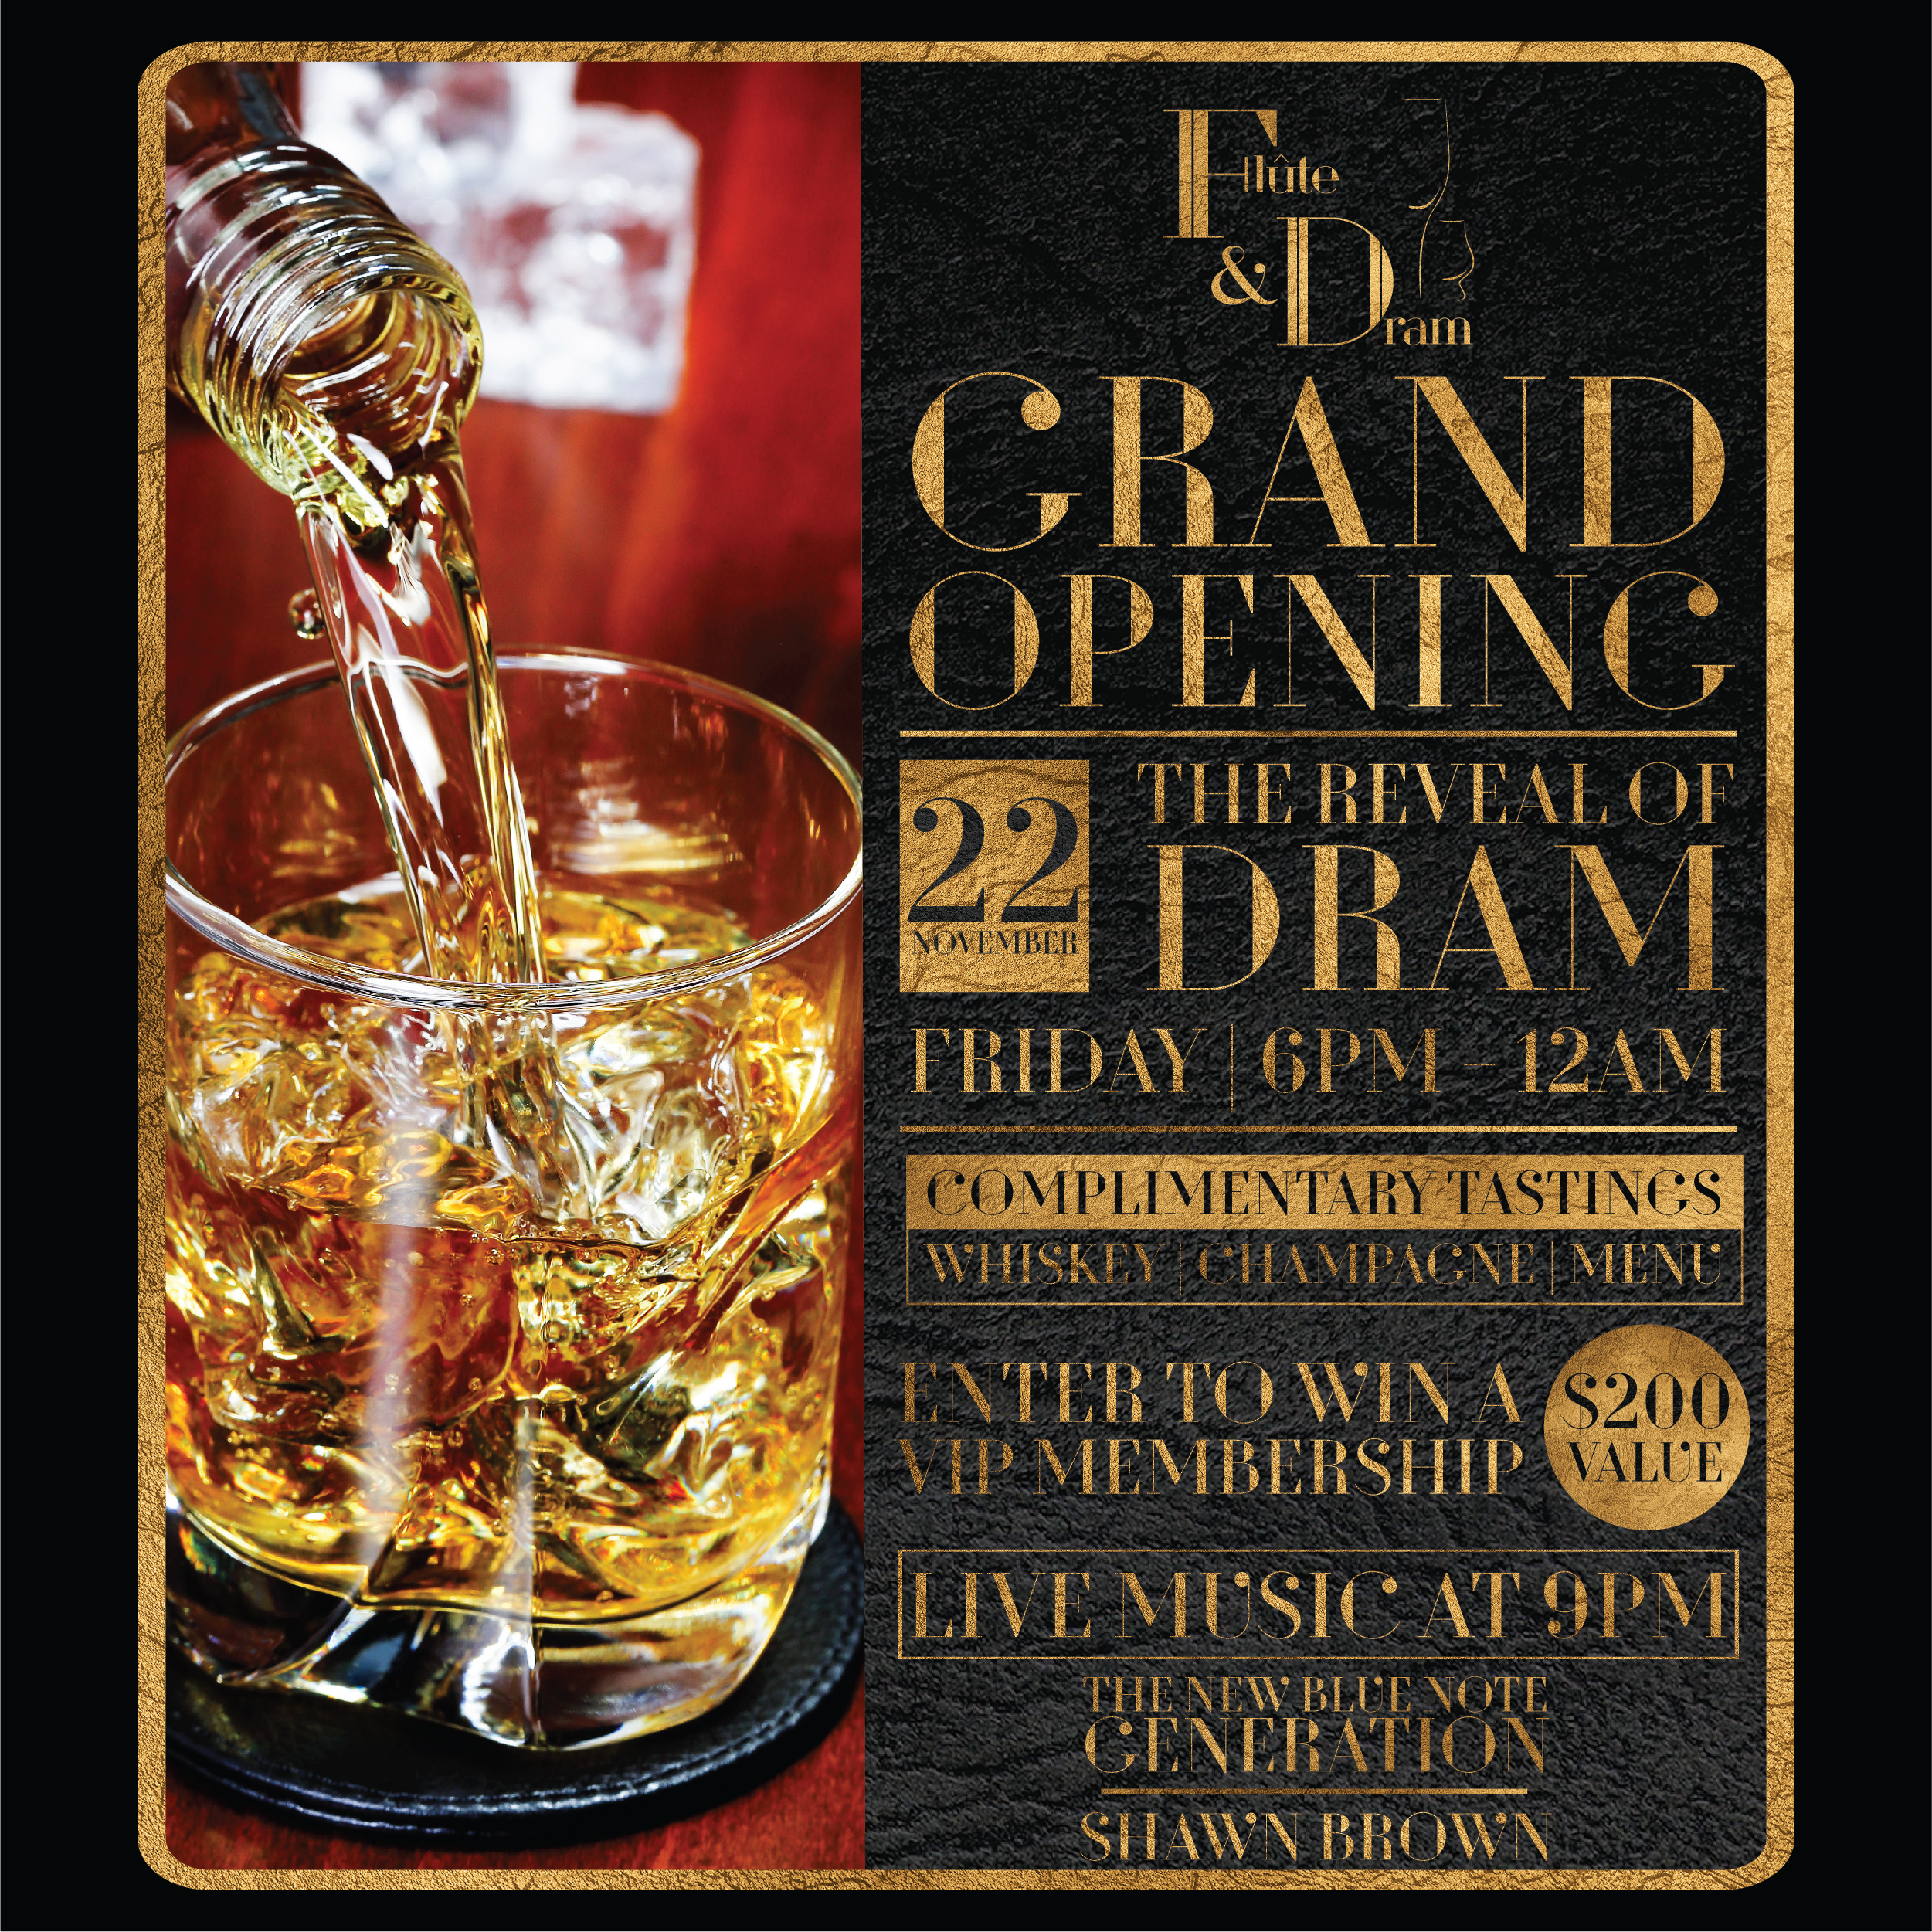 Beach Drive's 'Flute and Dram' Hosts Grand Opening Reception